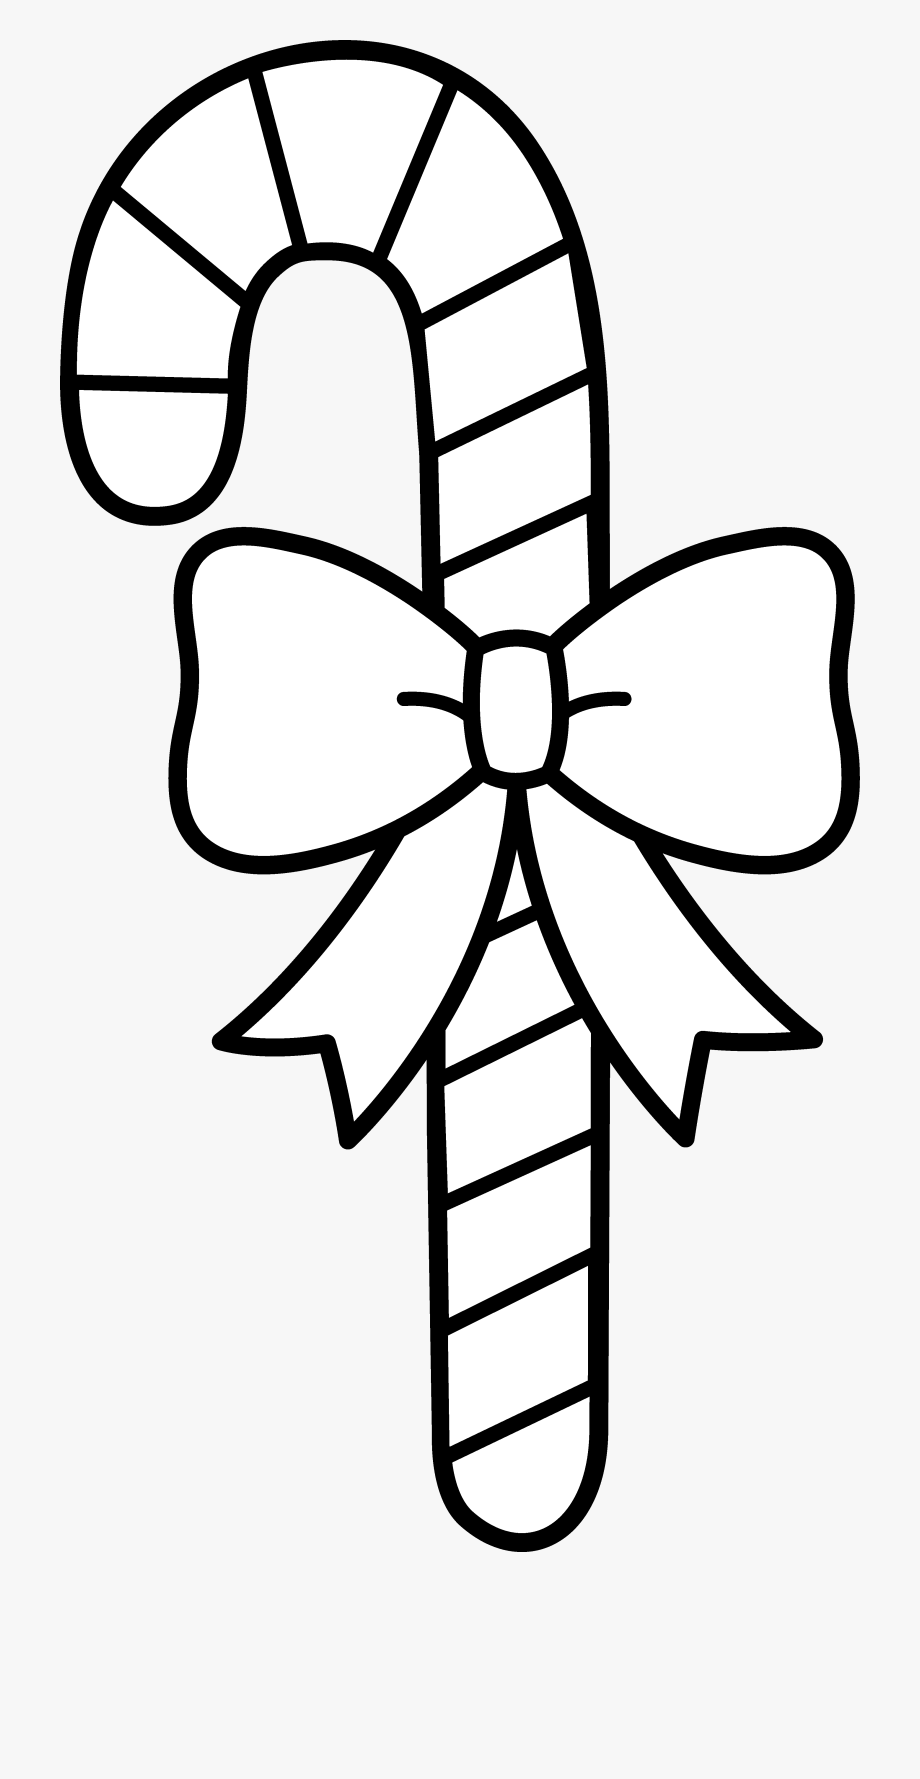 Jesus candy cane clipart black and white jpg library Special Sunday School Clipart - Candy Canes Black And White #86759 ... jpg library